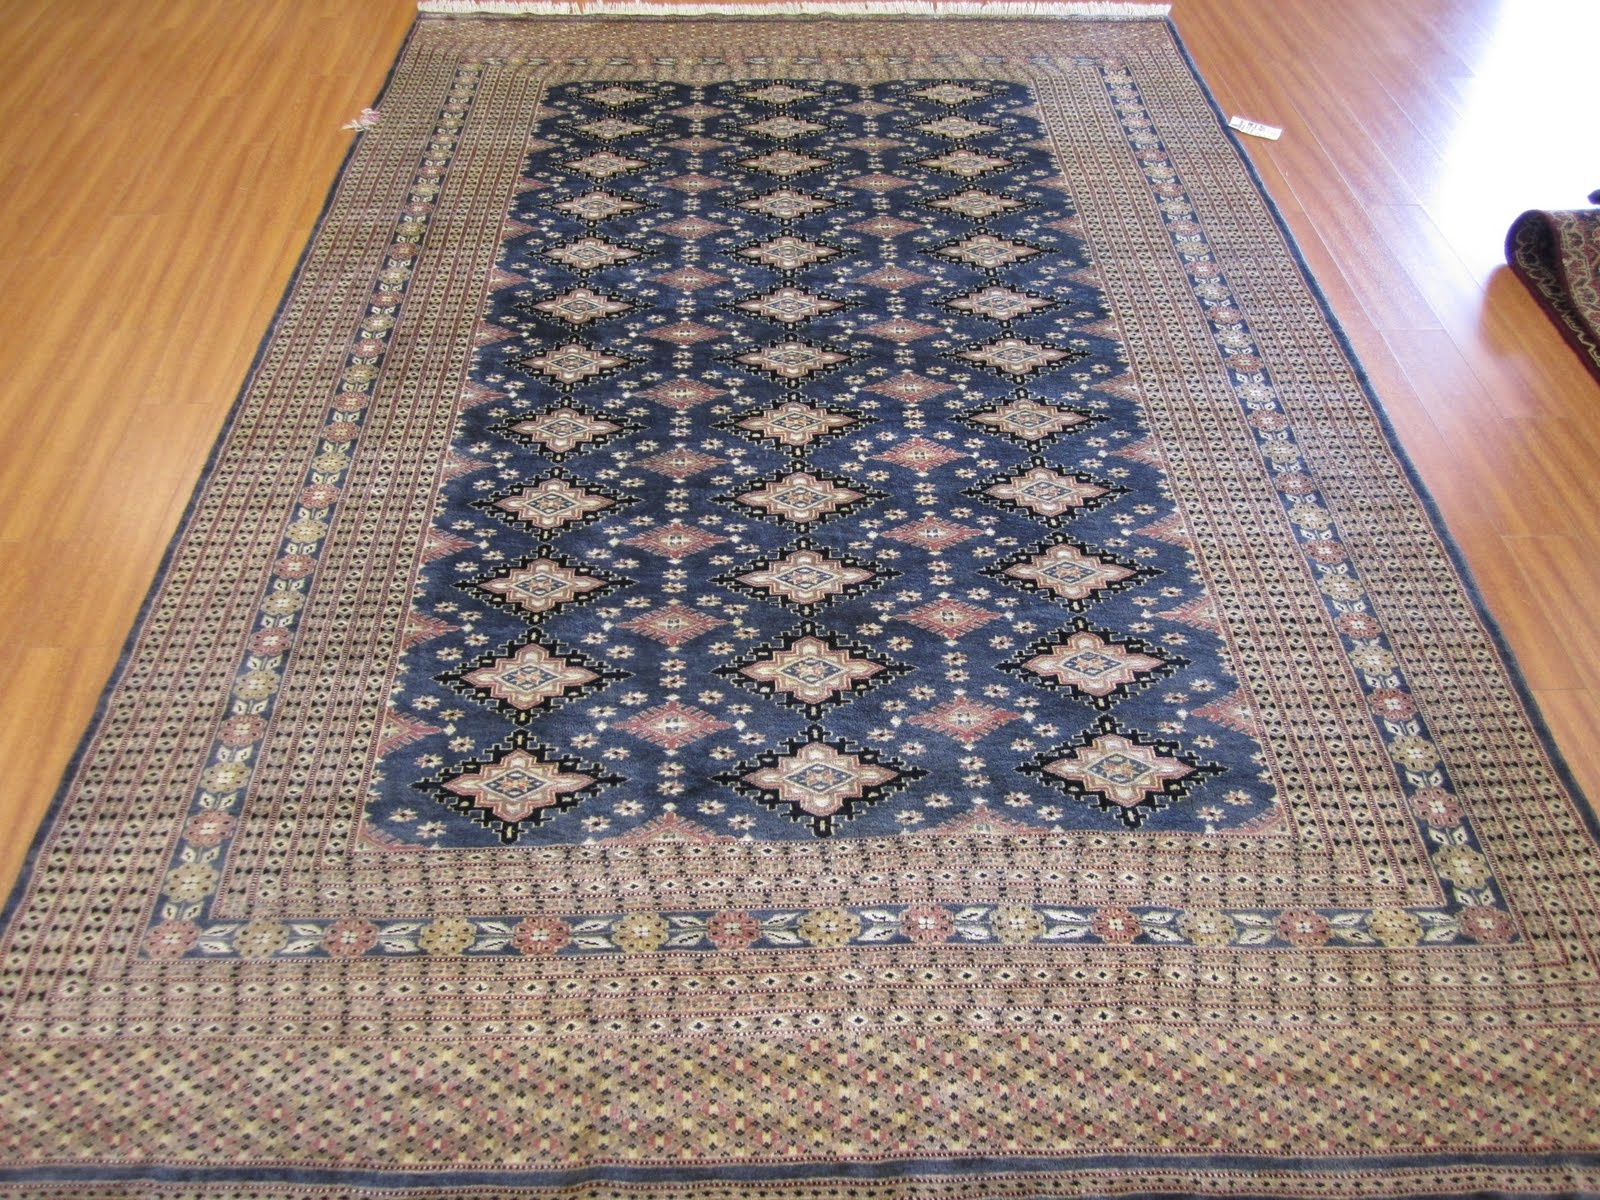 Handmade Rug Affordable Handmade Rugs And Carpets Rugler Inside Handmade Rugs (Image 9 of 15)